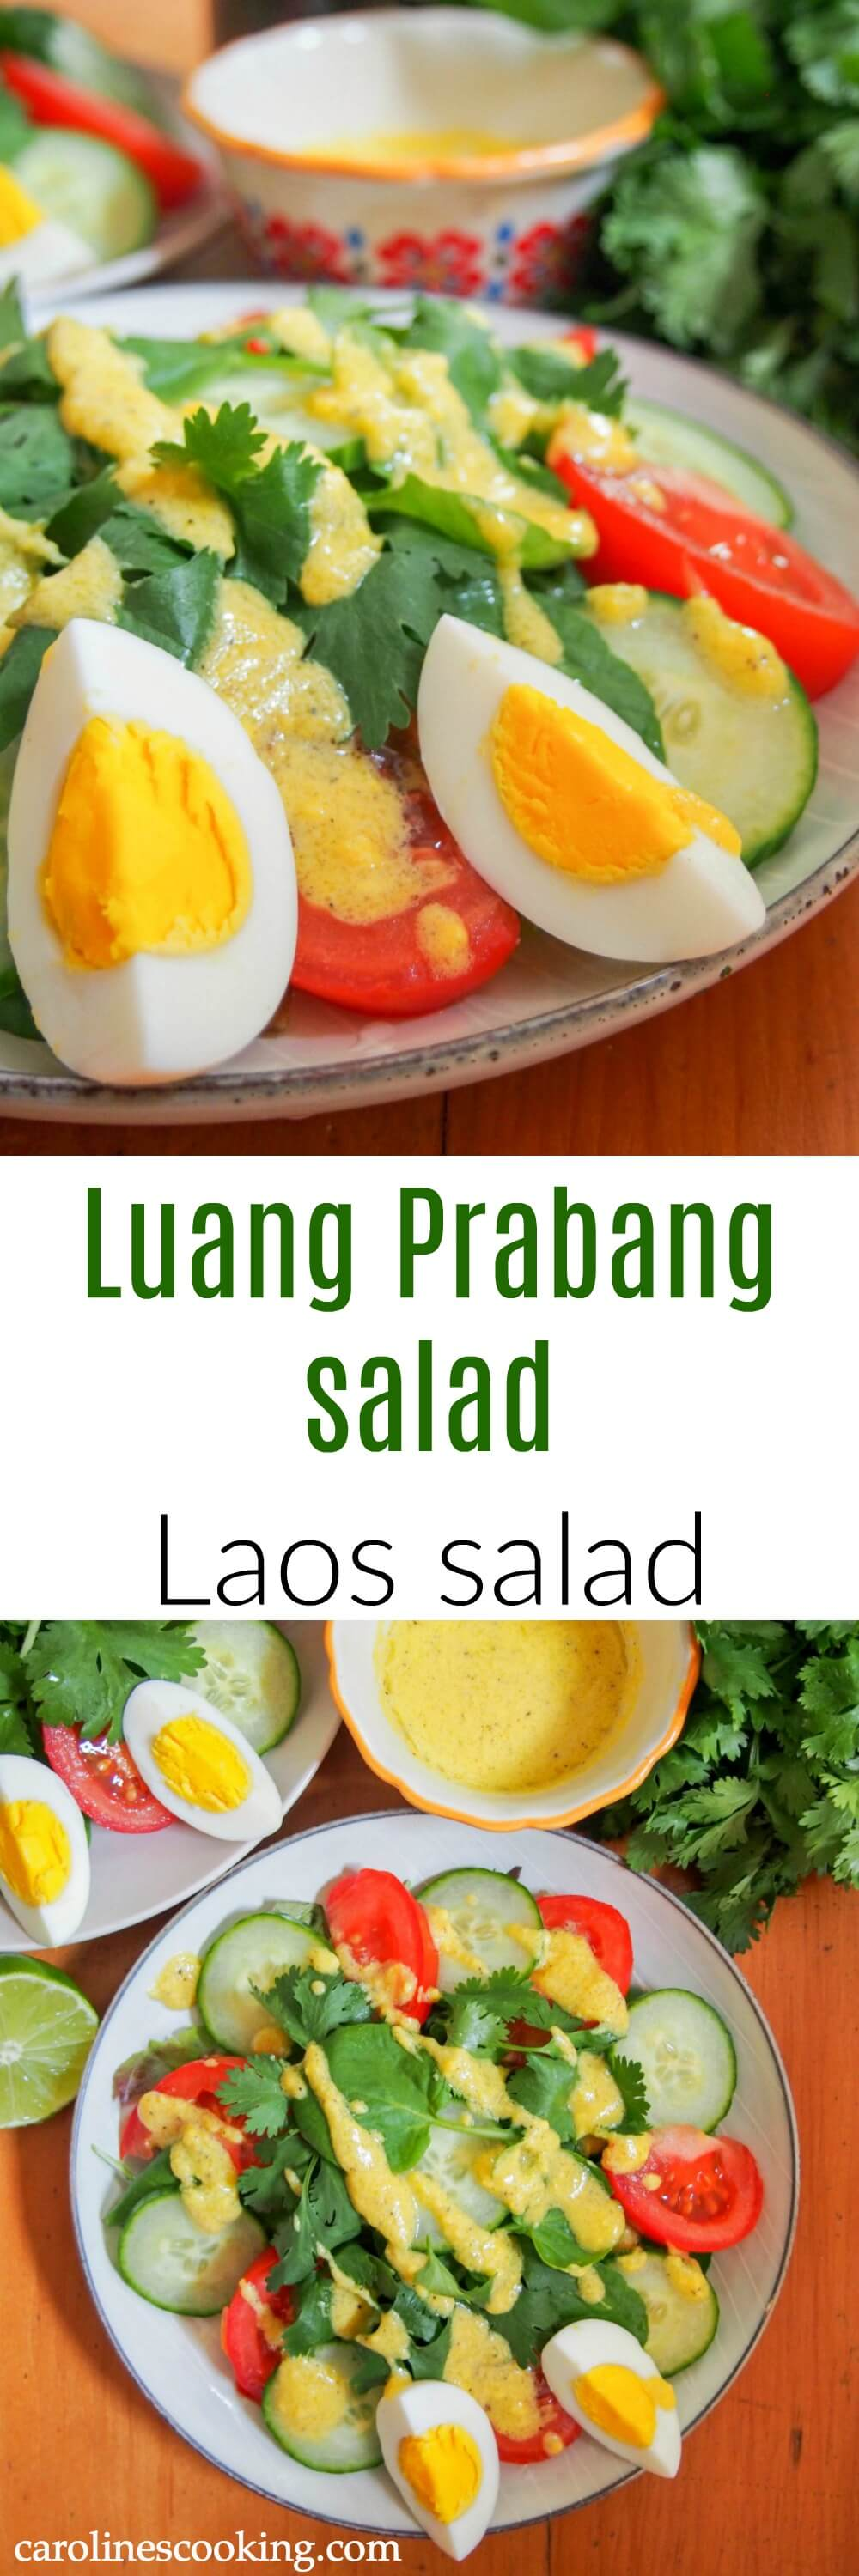 Luang Prabang salad is an easy, simple dish with a slightly unusual dressing that's a classic in Laos. This Laos salad is a perfect light lunch or side dish both to Asian food and many more.